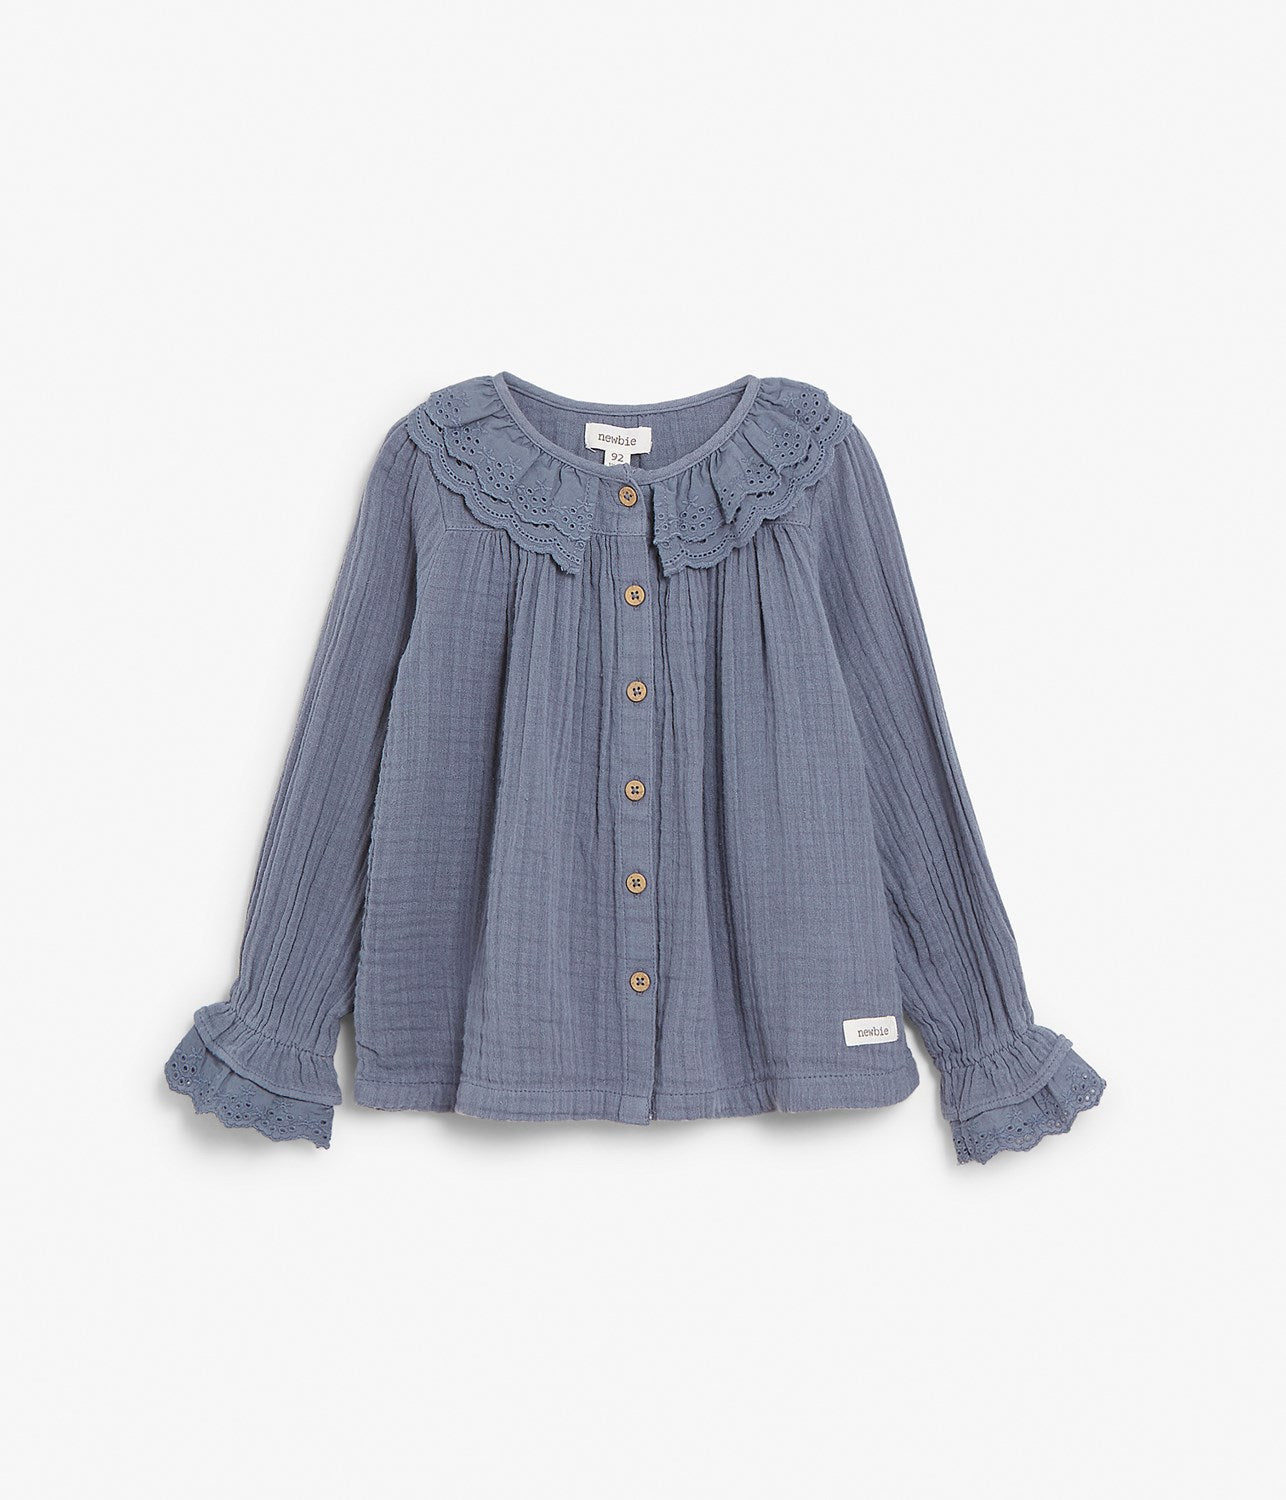 Kids blue crinkle top with frills